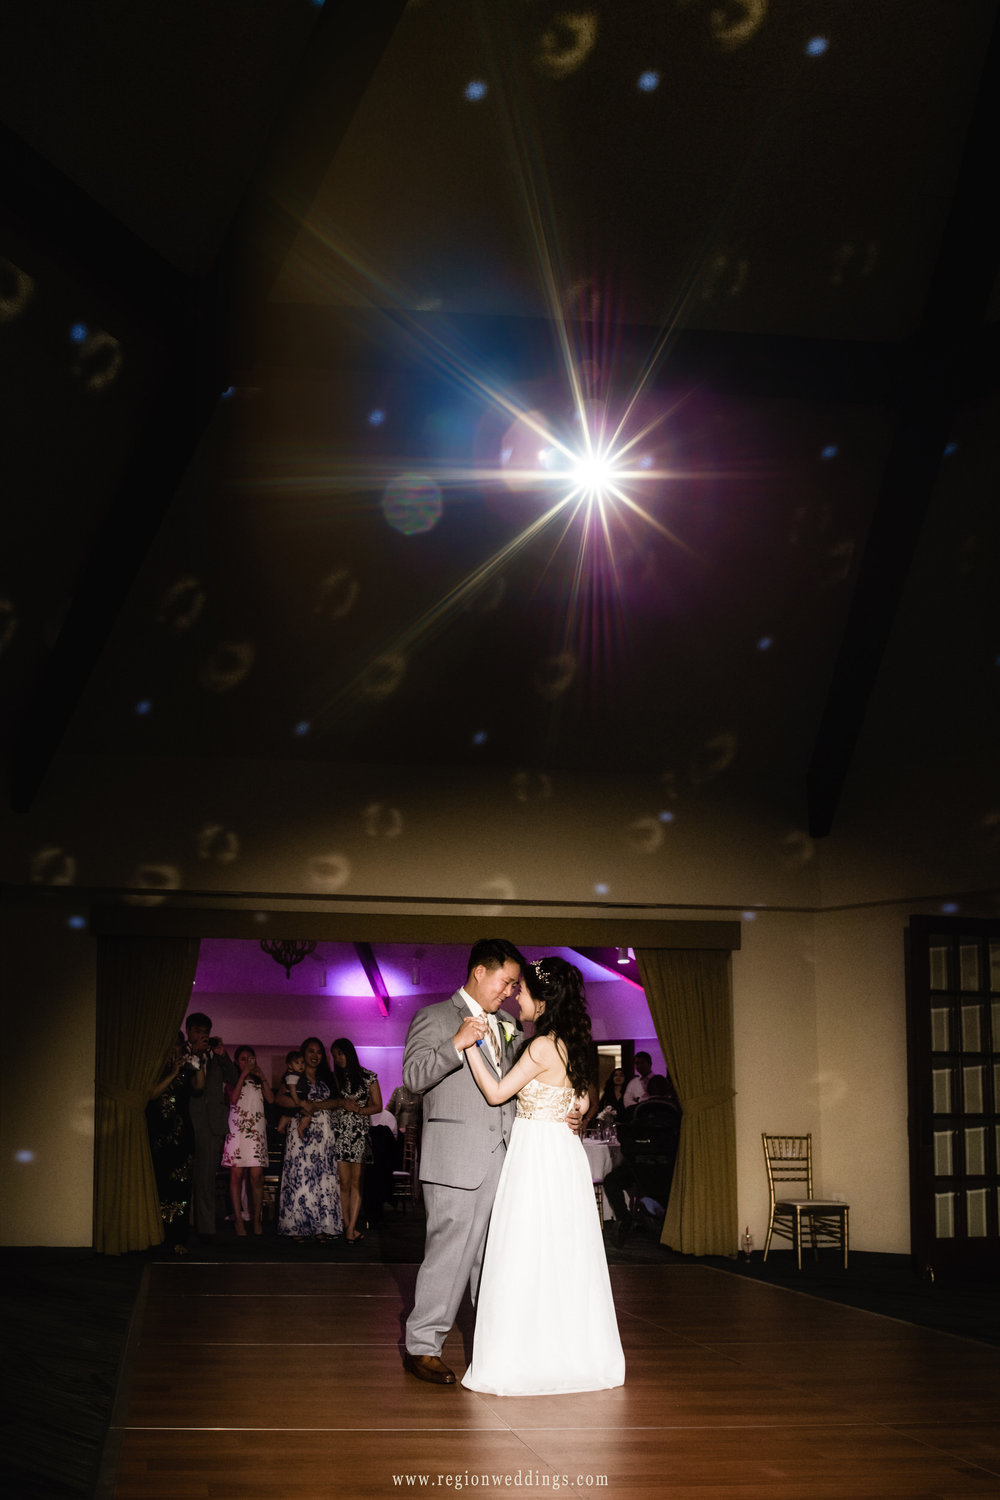 First dance for the bride and groom as romantic lighting engulfs the dance floor.